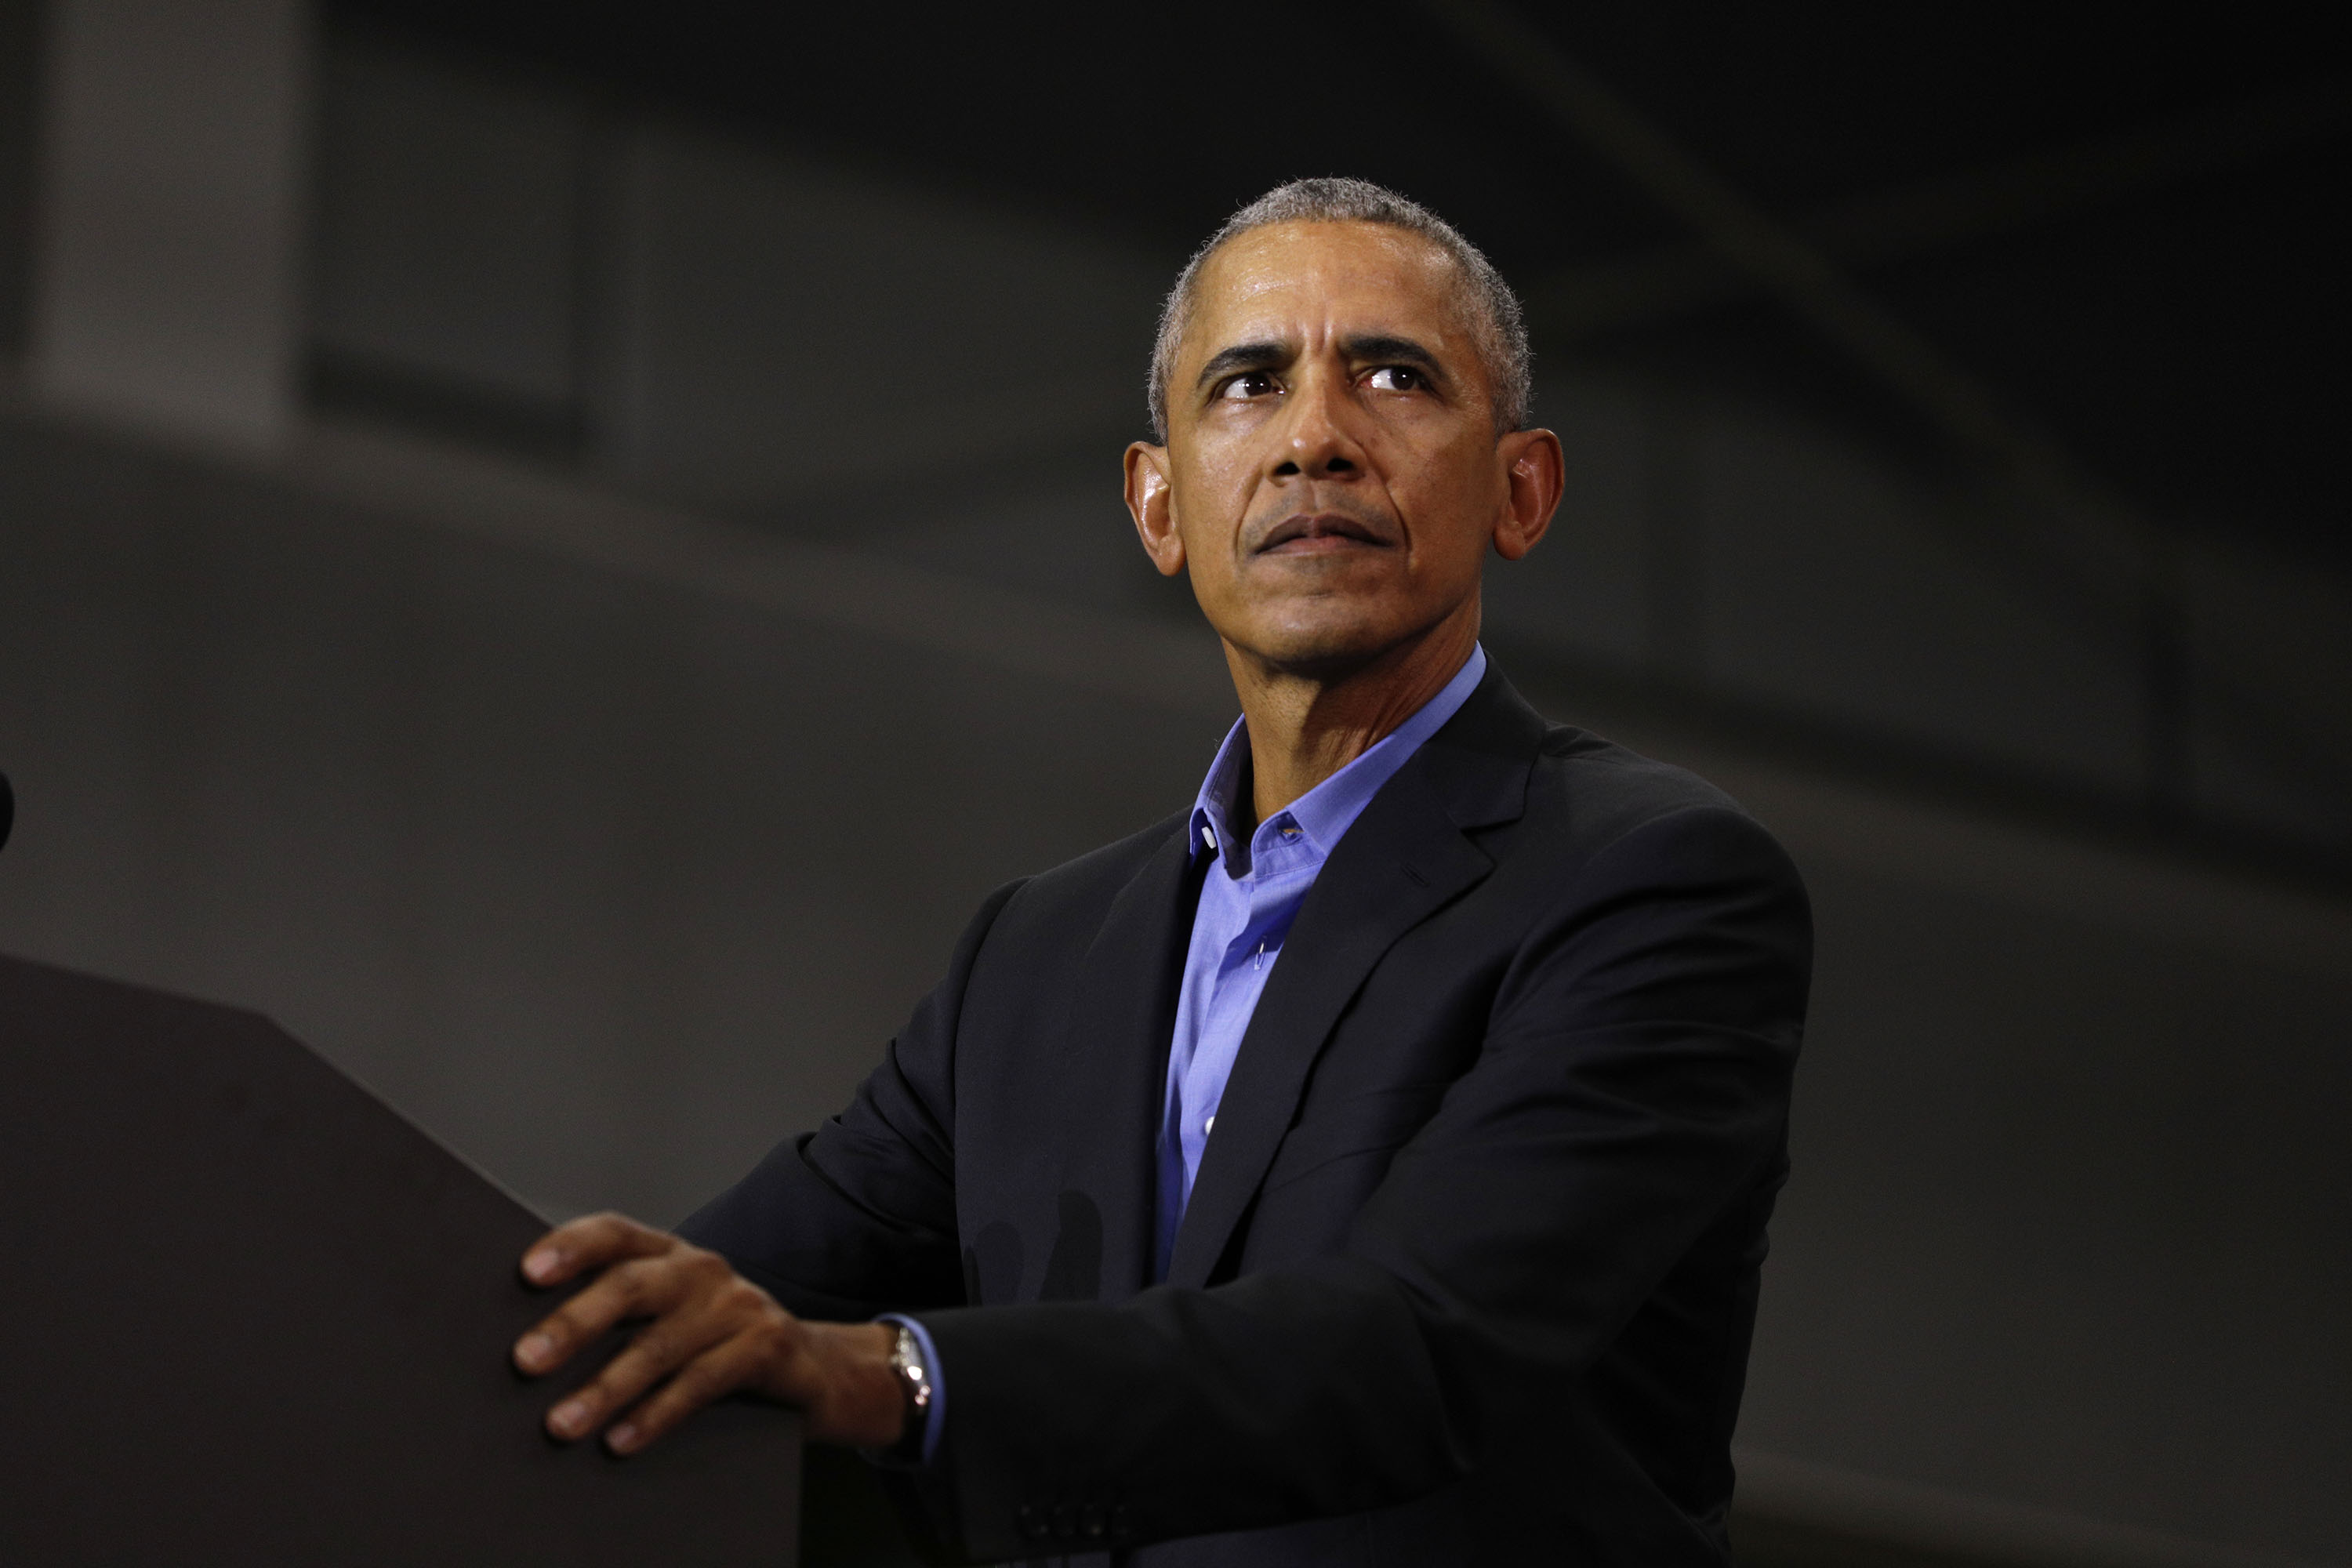 Obama urges young black people to 'feel hopeful even as you may feel angry' after George Floyd's death